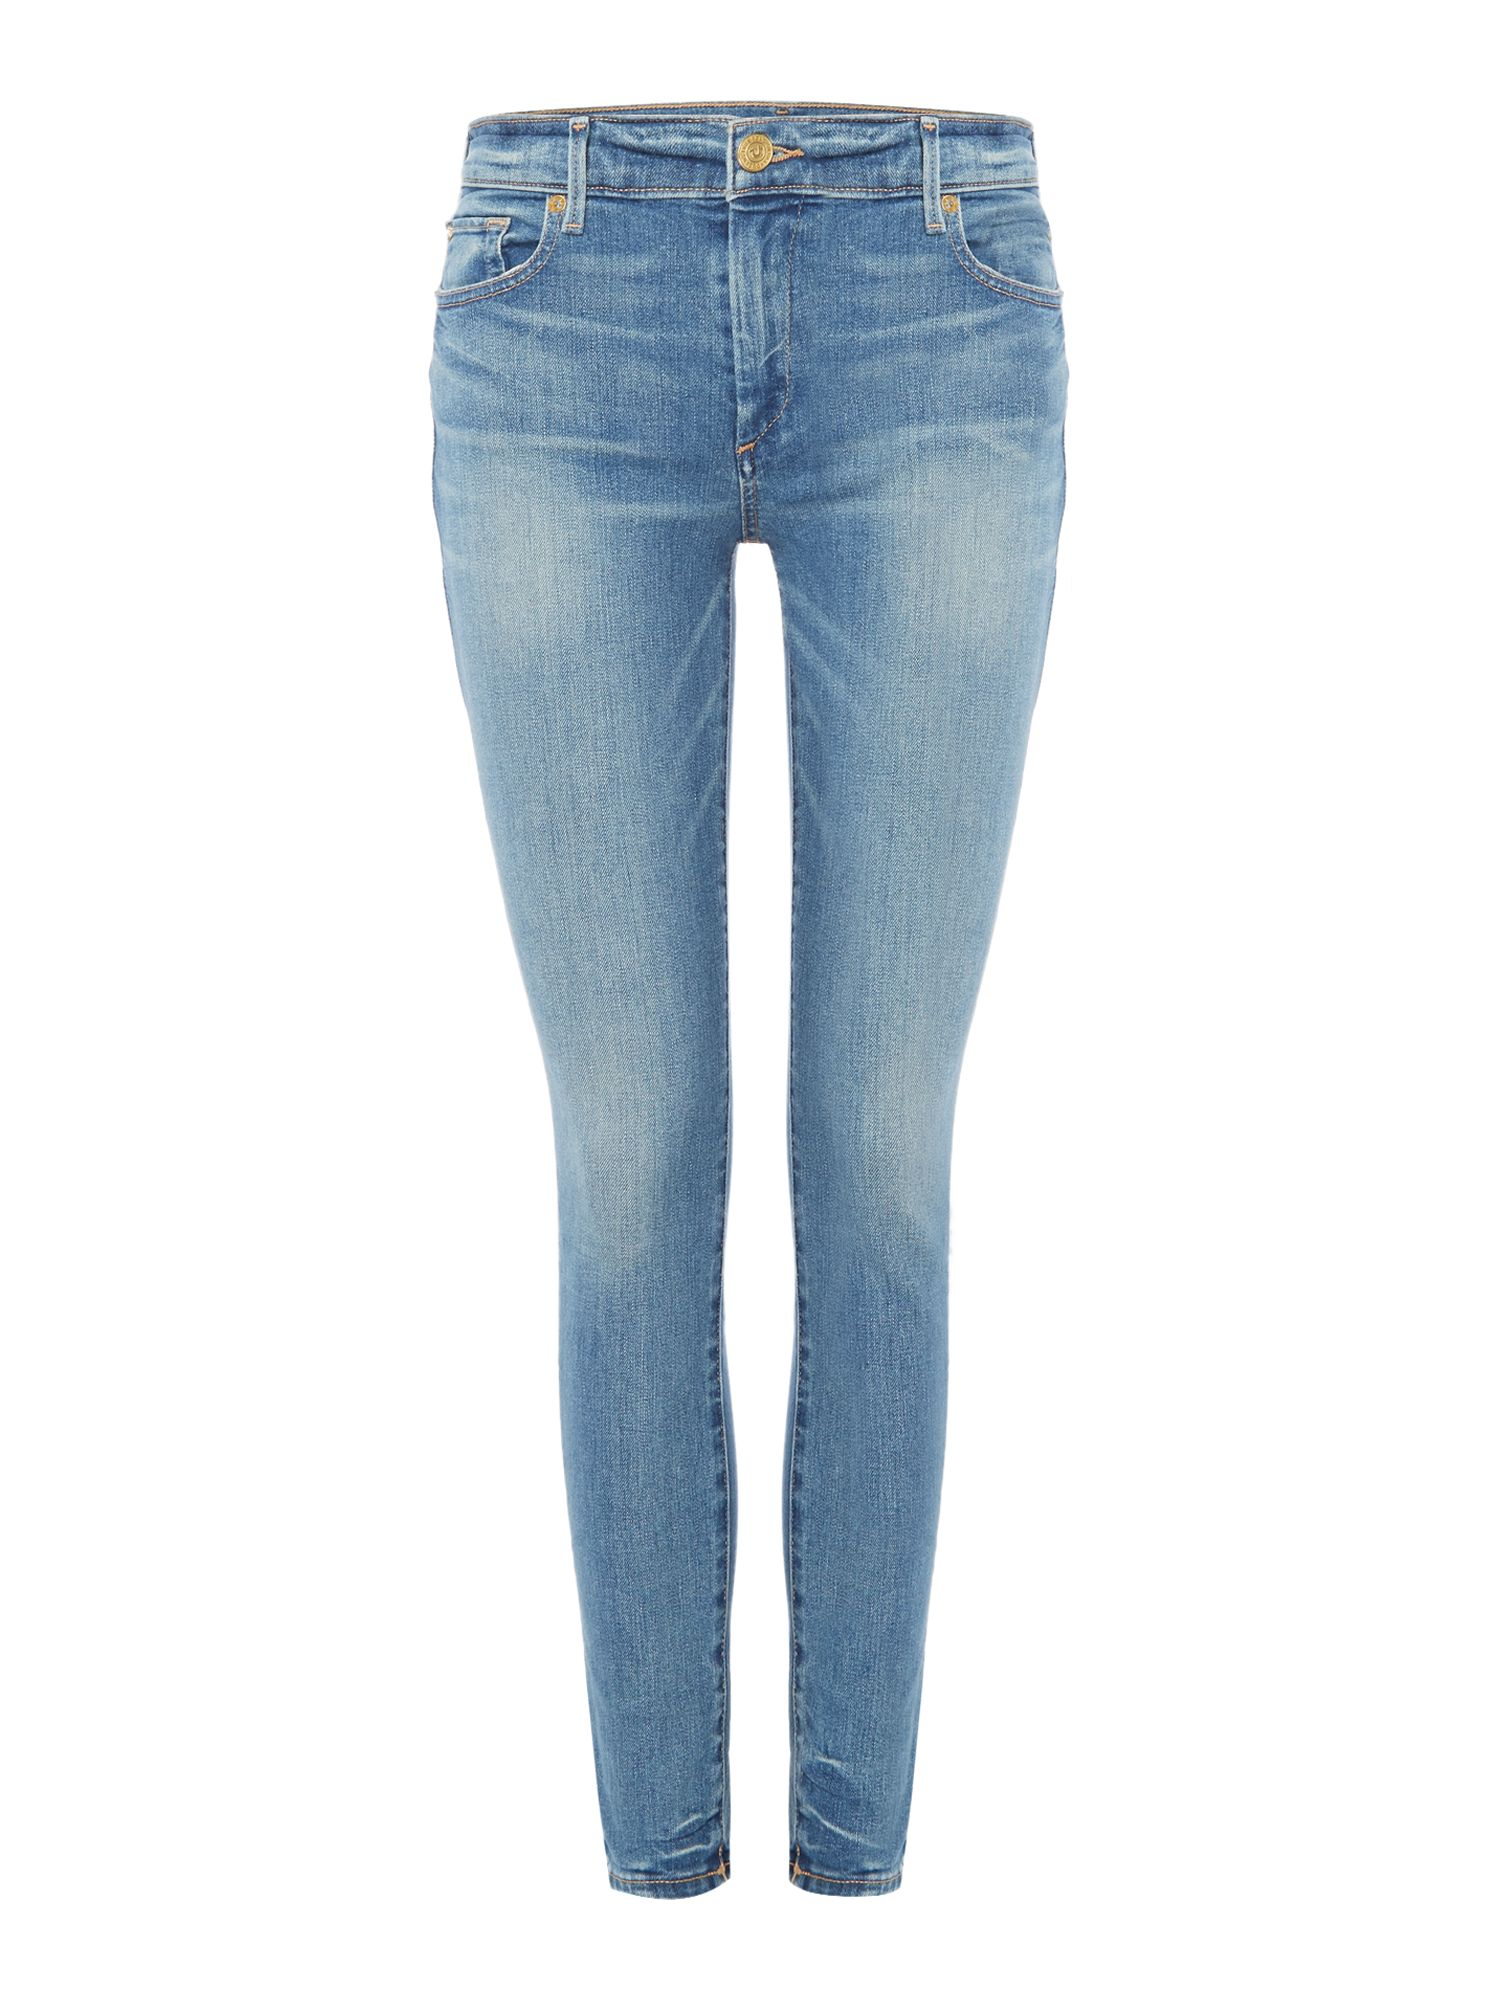 Halle Mid Rise Super Skinny In Gypset Blue, Denim Mid Wash